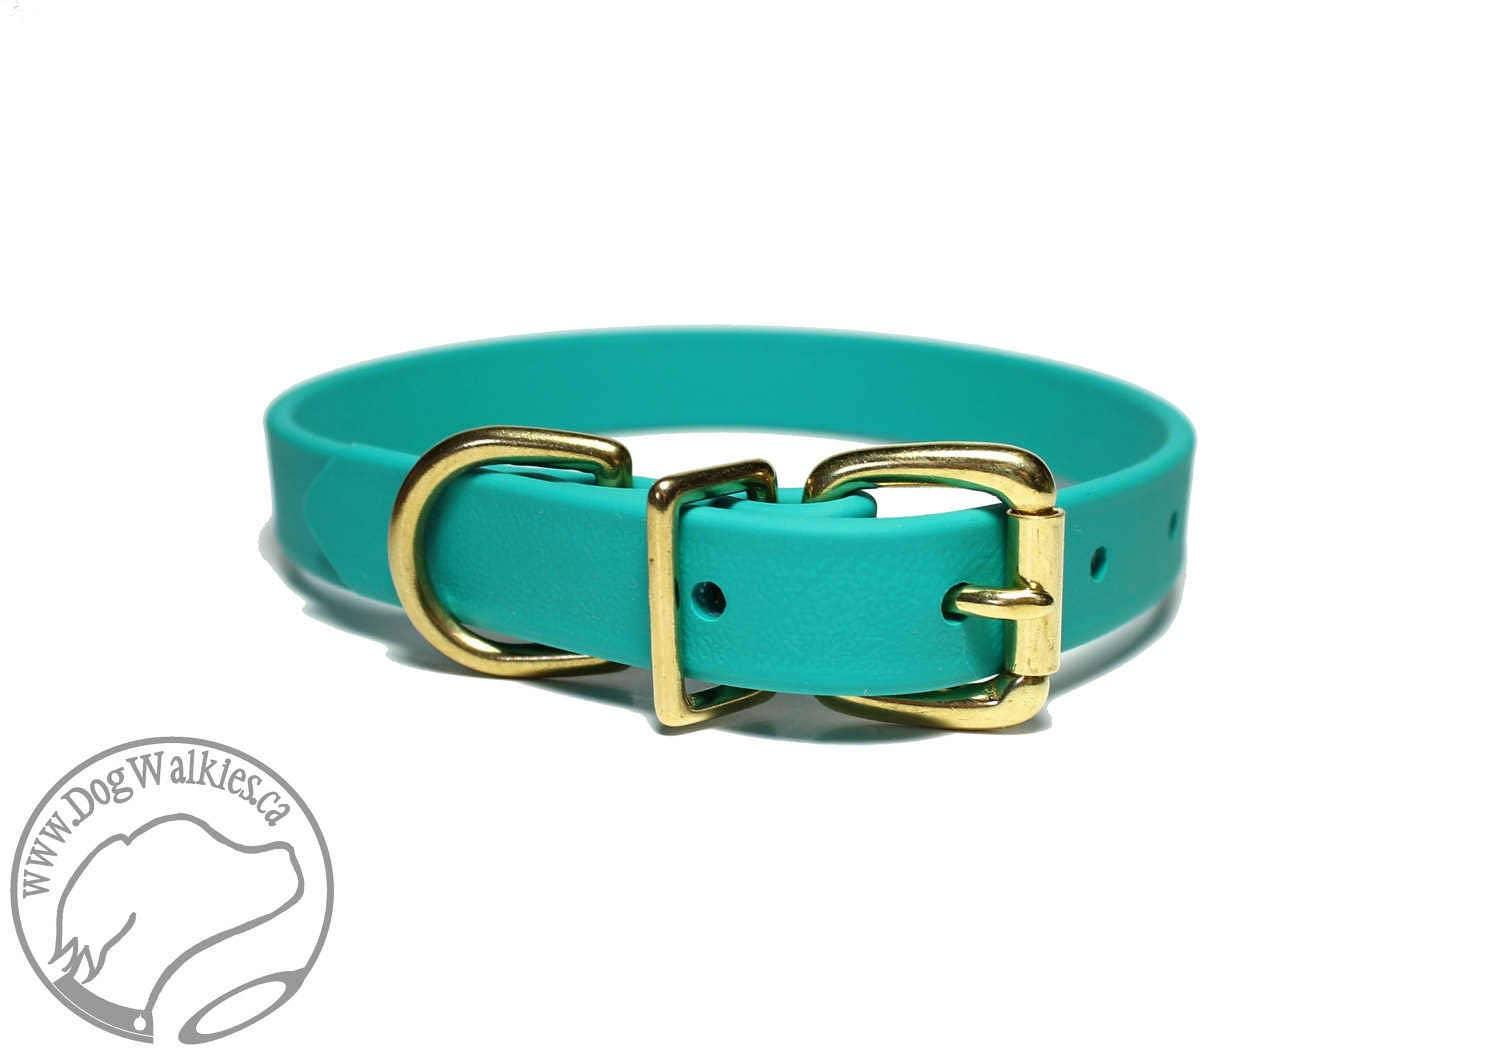 Teal Blue Dog Collar